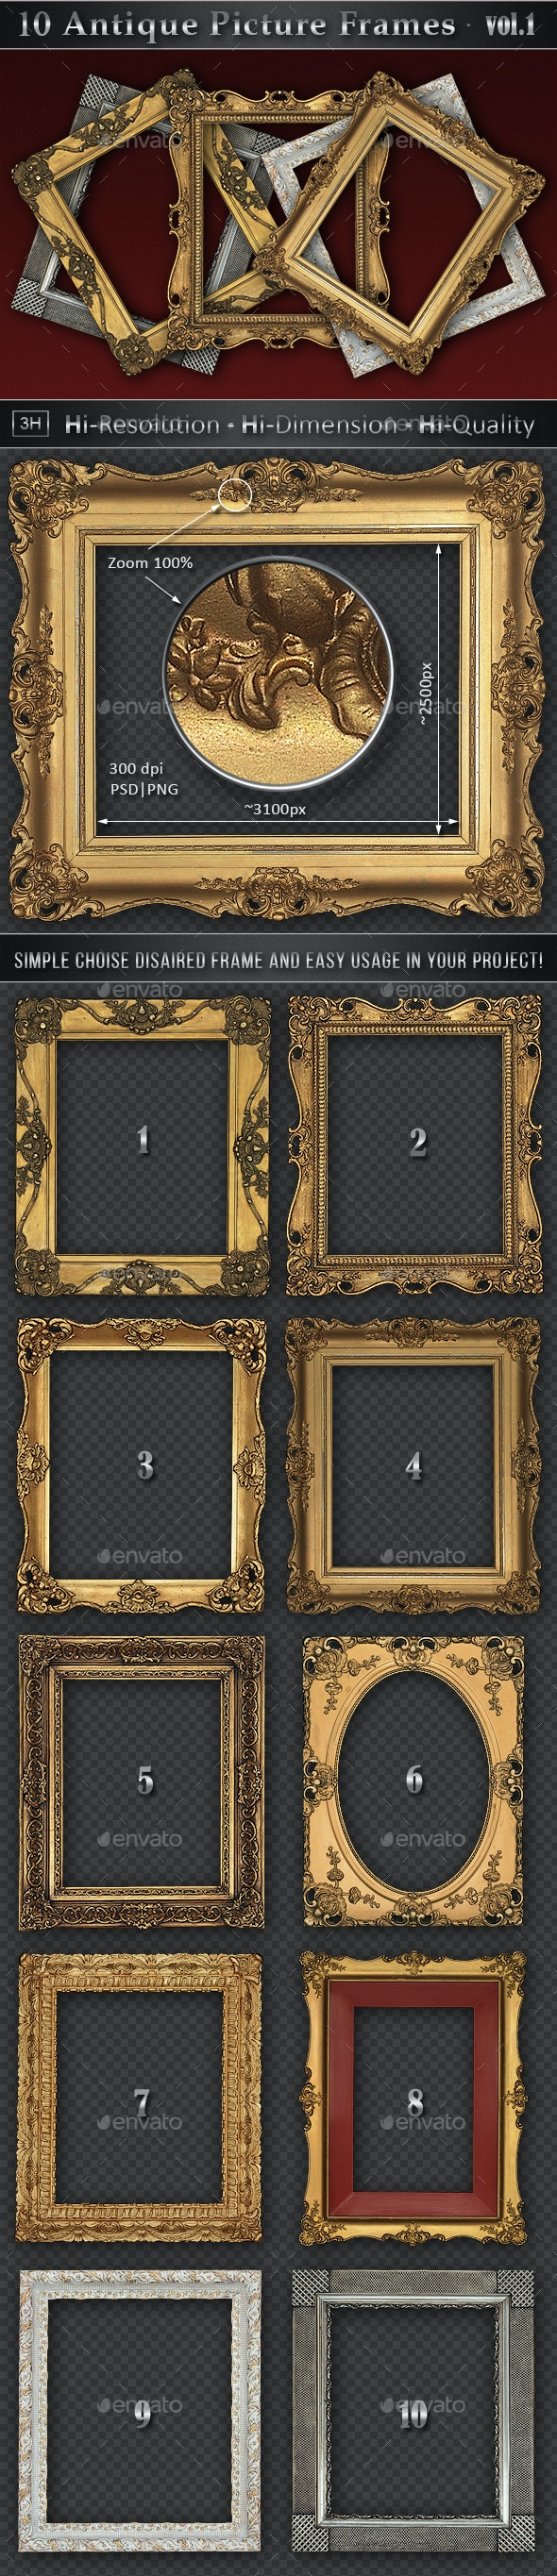 10 Antique Classic Picture Frames vol.1 - Home & Office Isolated Objects